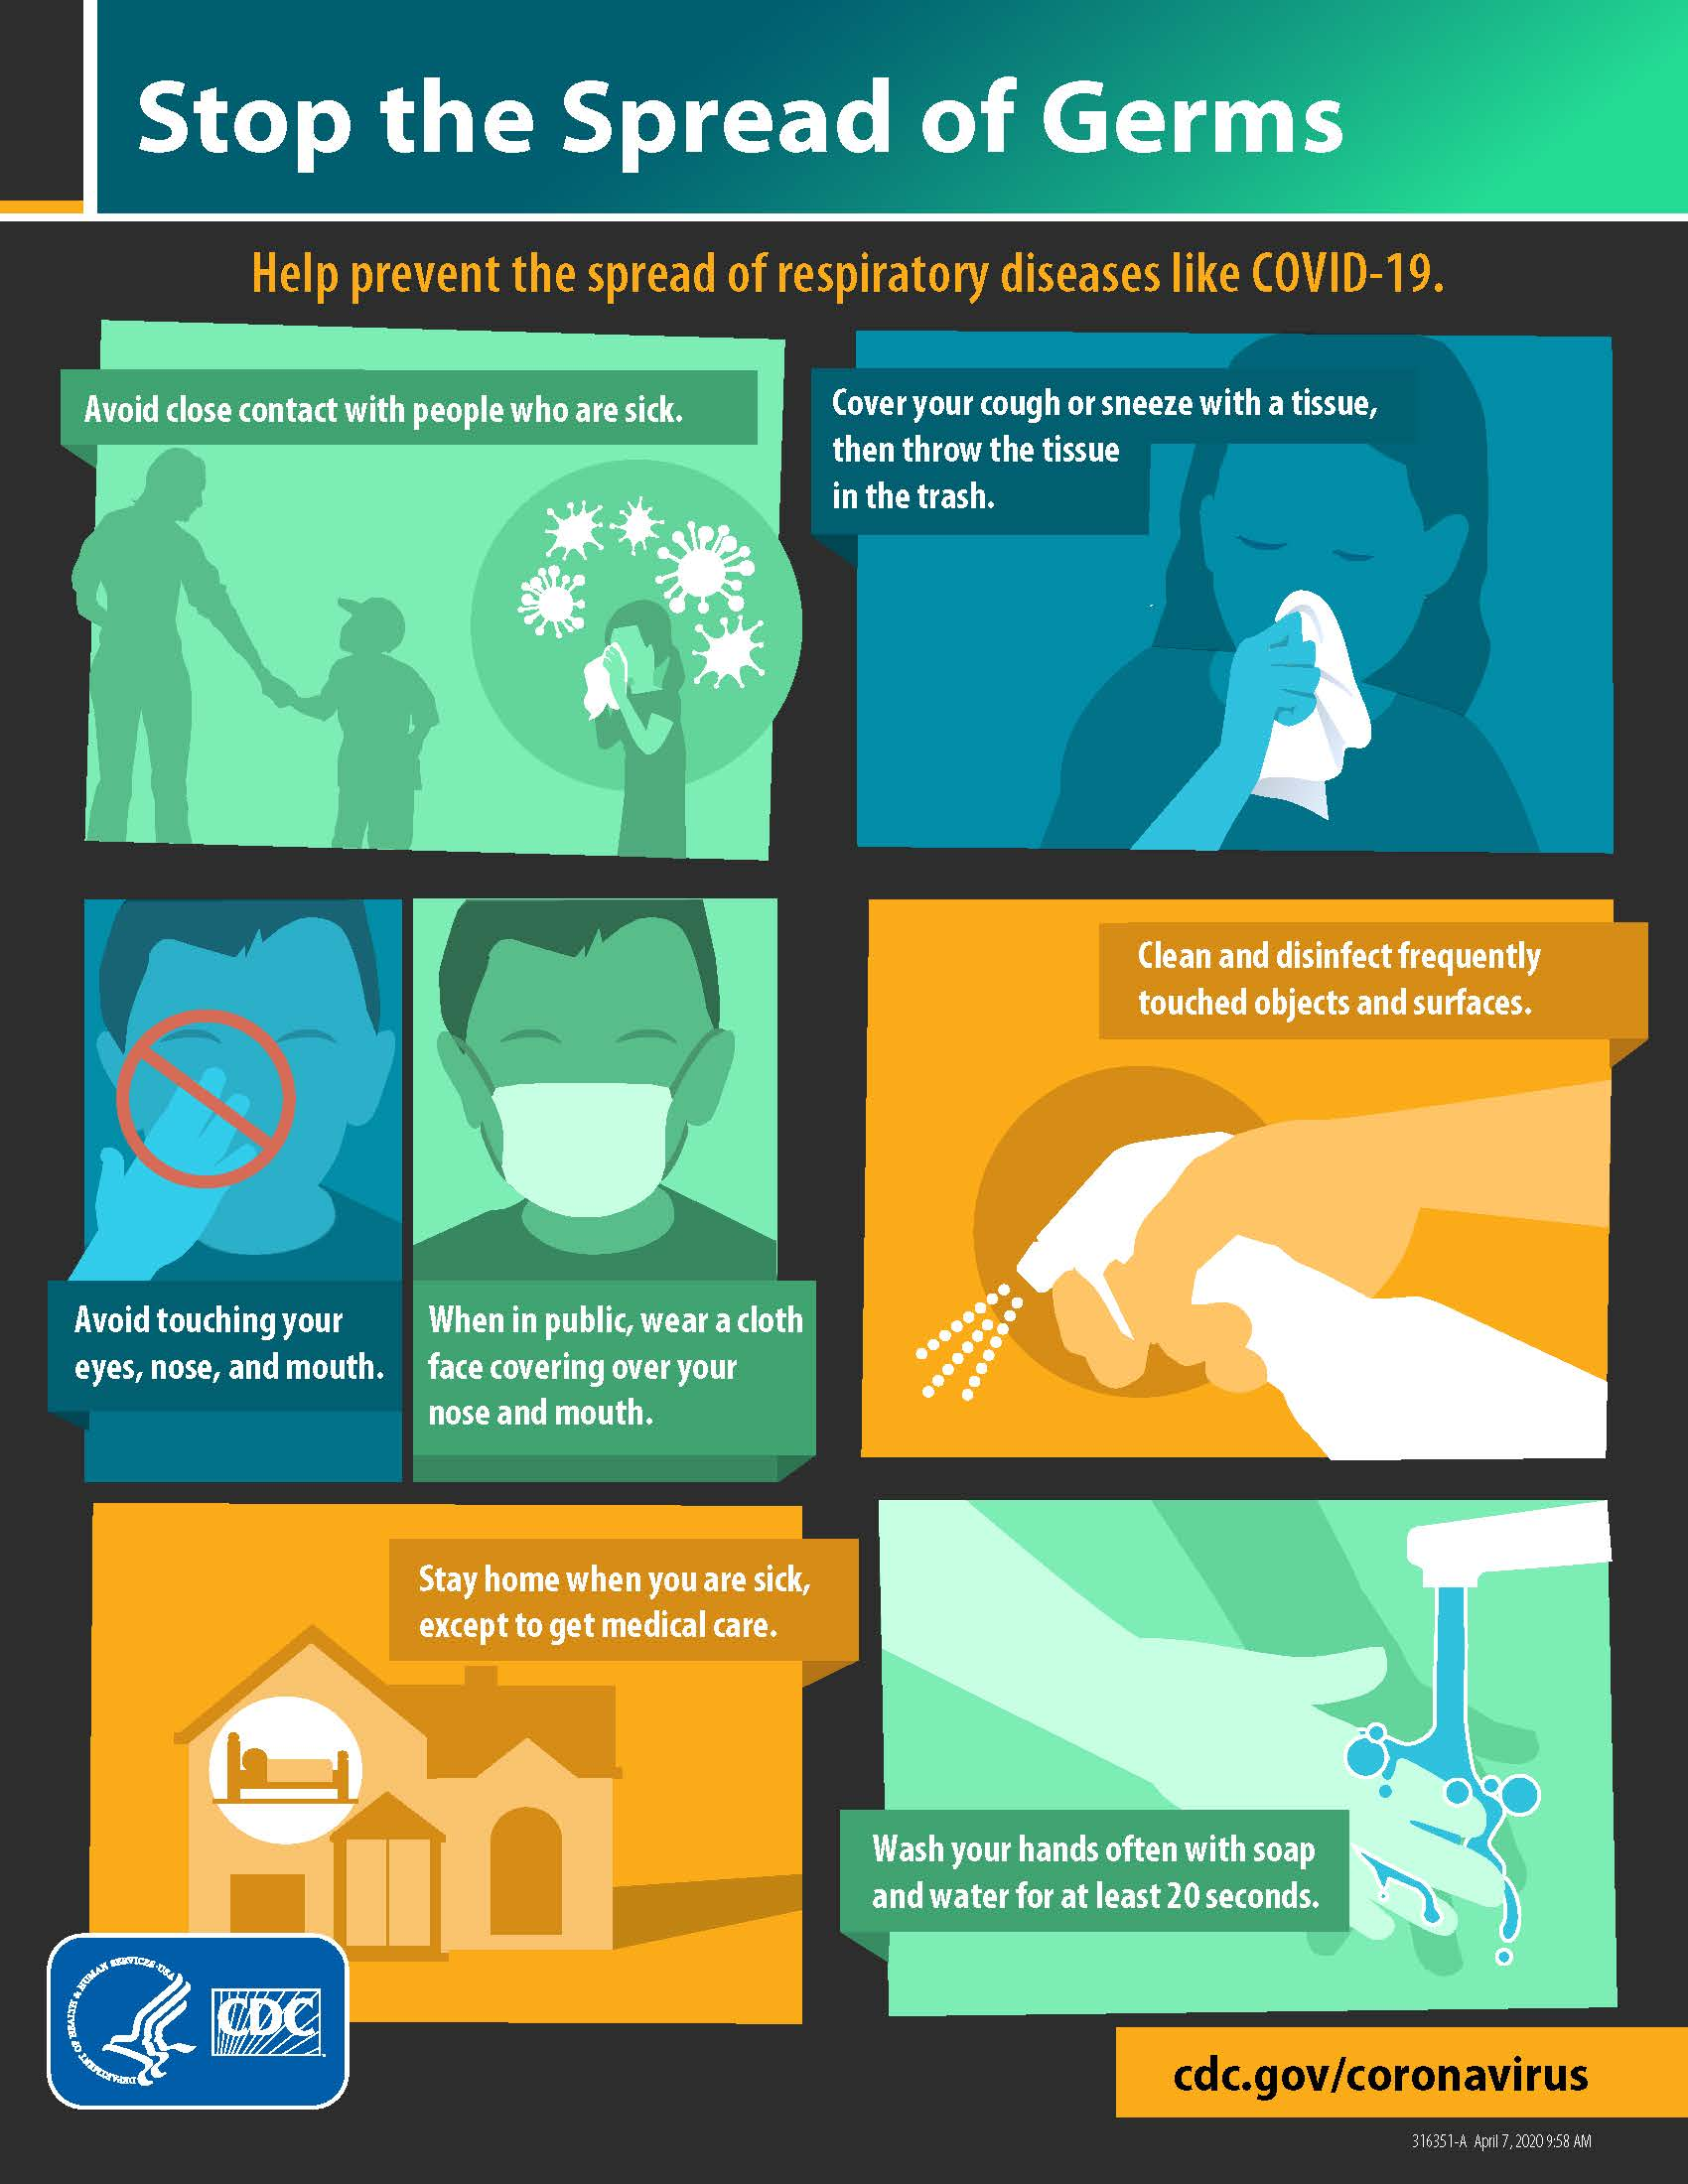 CDC information on how to stop the spread of germs